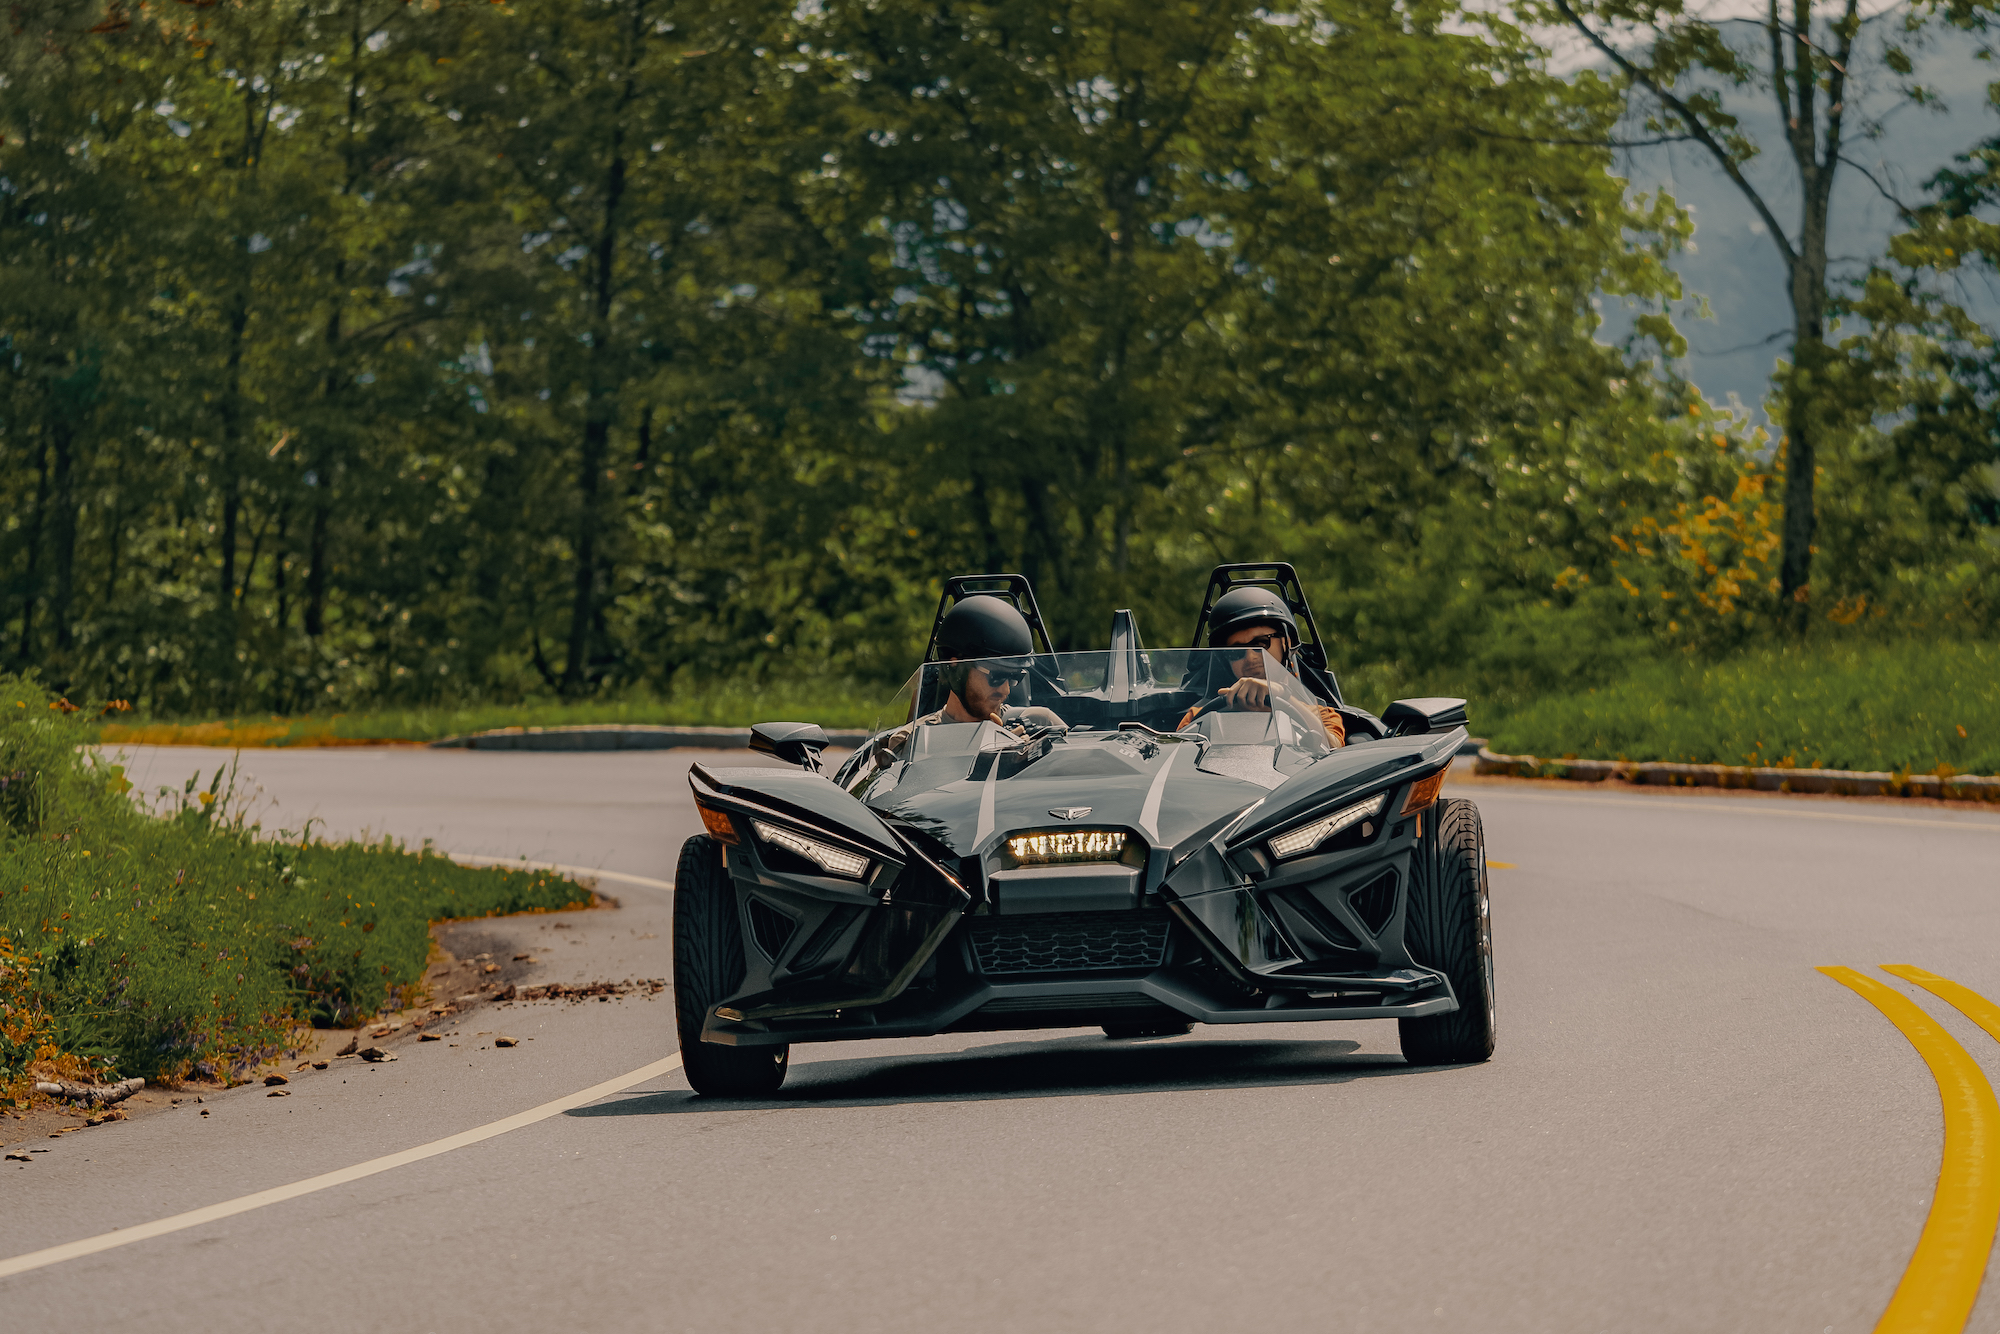 Polaris Slingshot driving down the road around a corner - Polaris Slingshots are available as rentals at the Mountain Mile Mall at Mountain Mile Adventures in Pigeon Forge, Tennessee